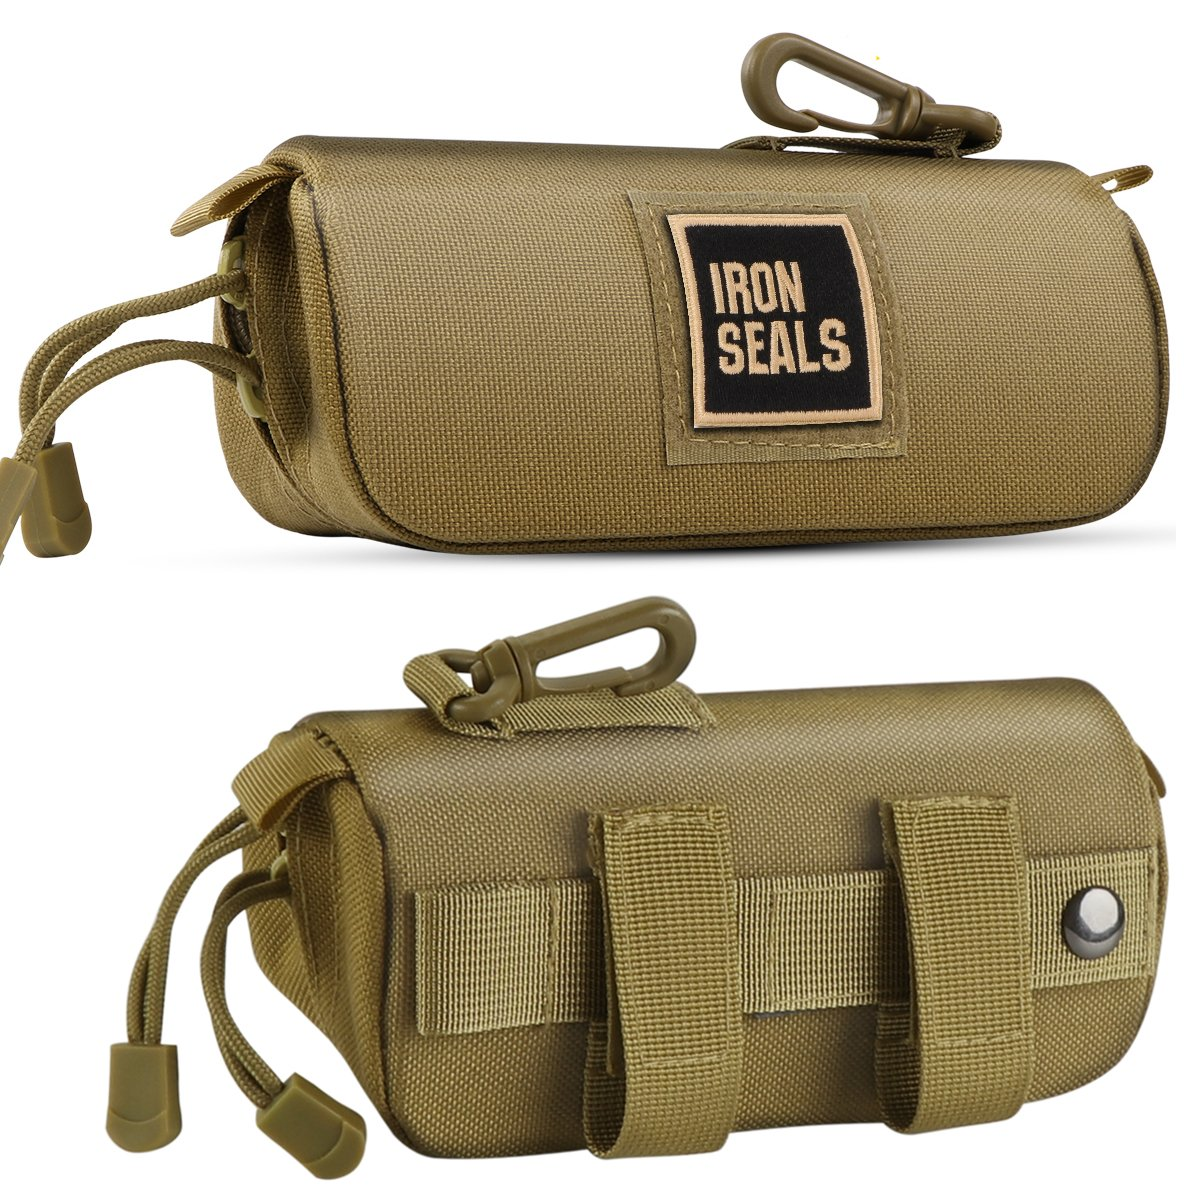 IronSeals Tactical Molle Sunglasses Case Anti-Shock Hard Clamshell Glasses Case